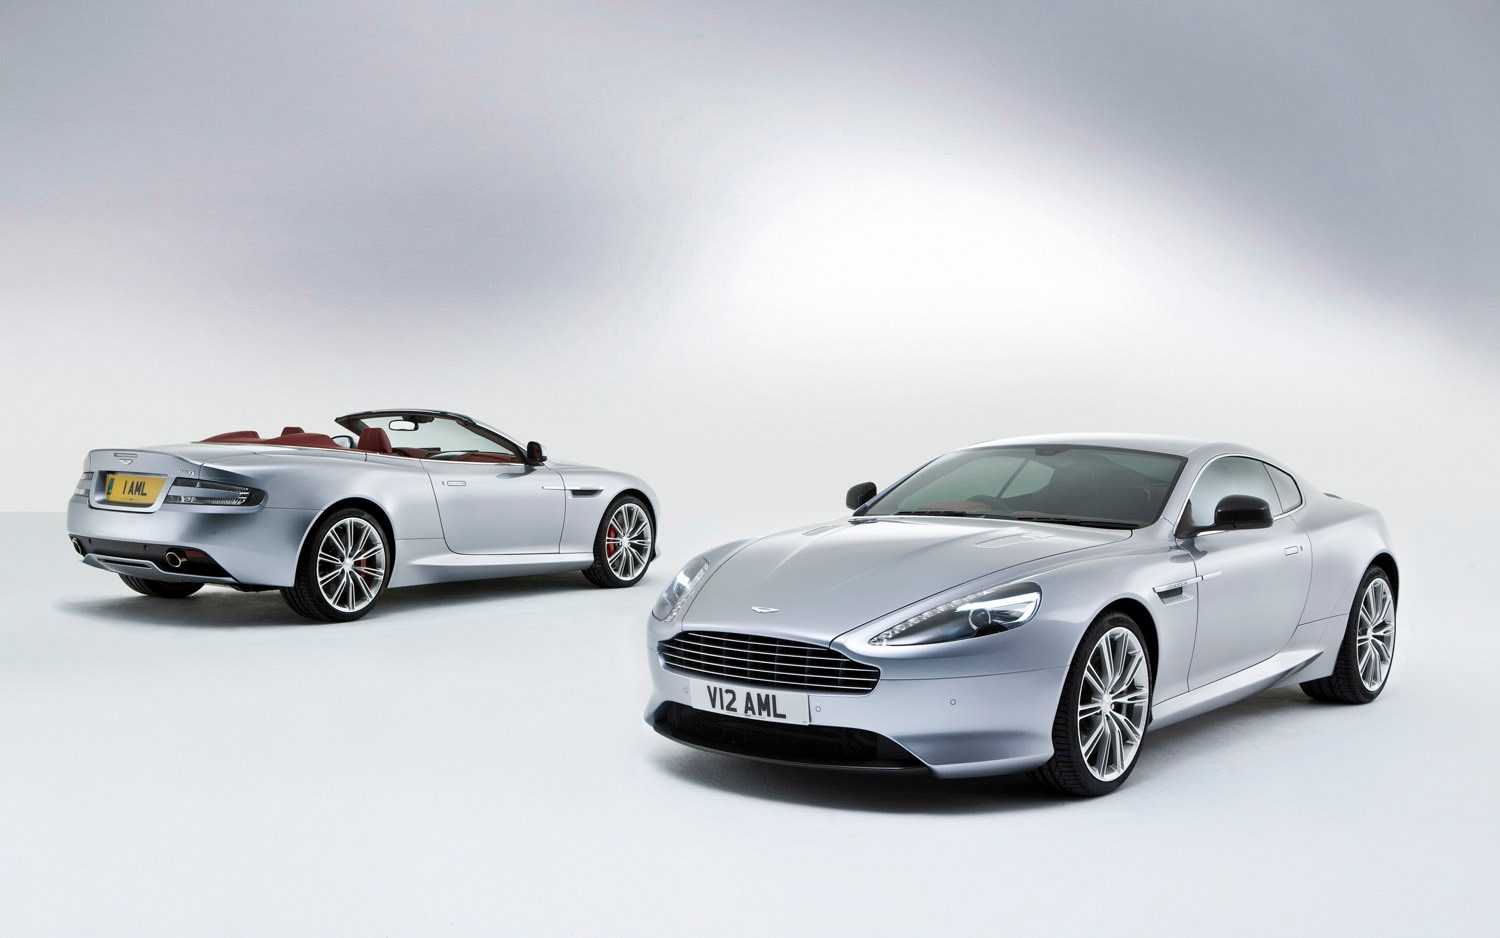 2013 Aston Martin DB9 Coupe And Volante 2 Up1